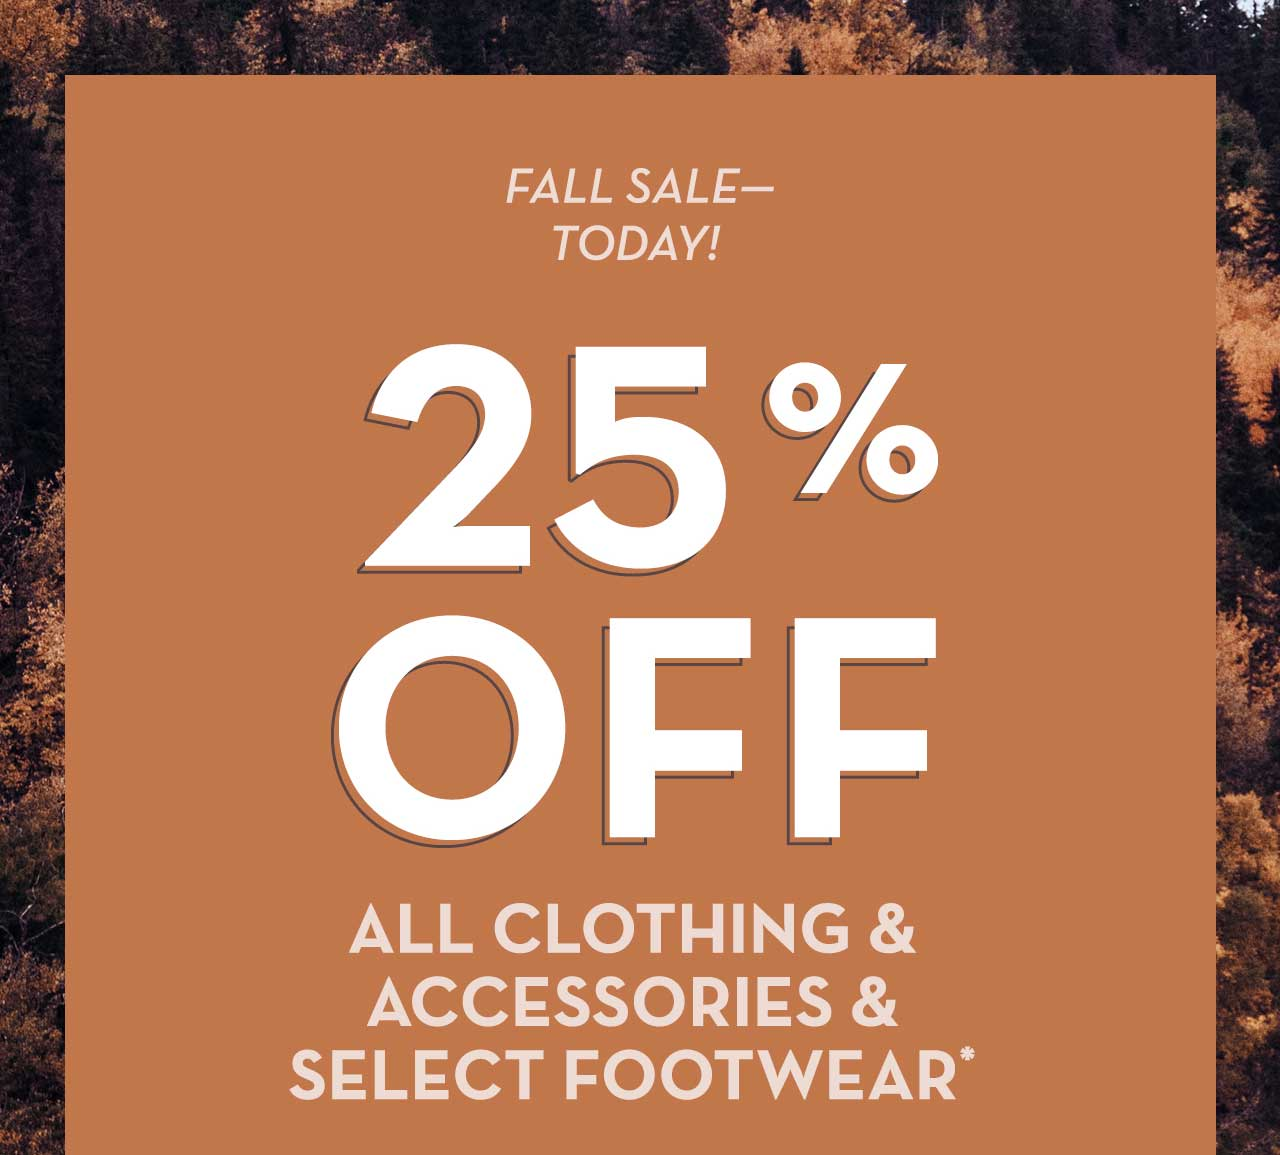 Fall Sale - Today! 25% Off All Clothing & Accessories & Select Footwear*